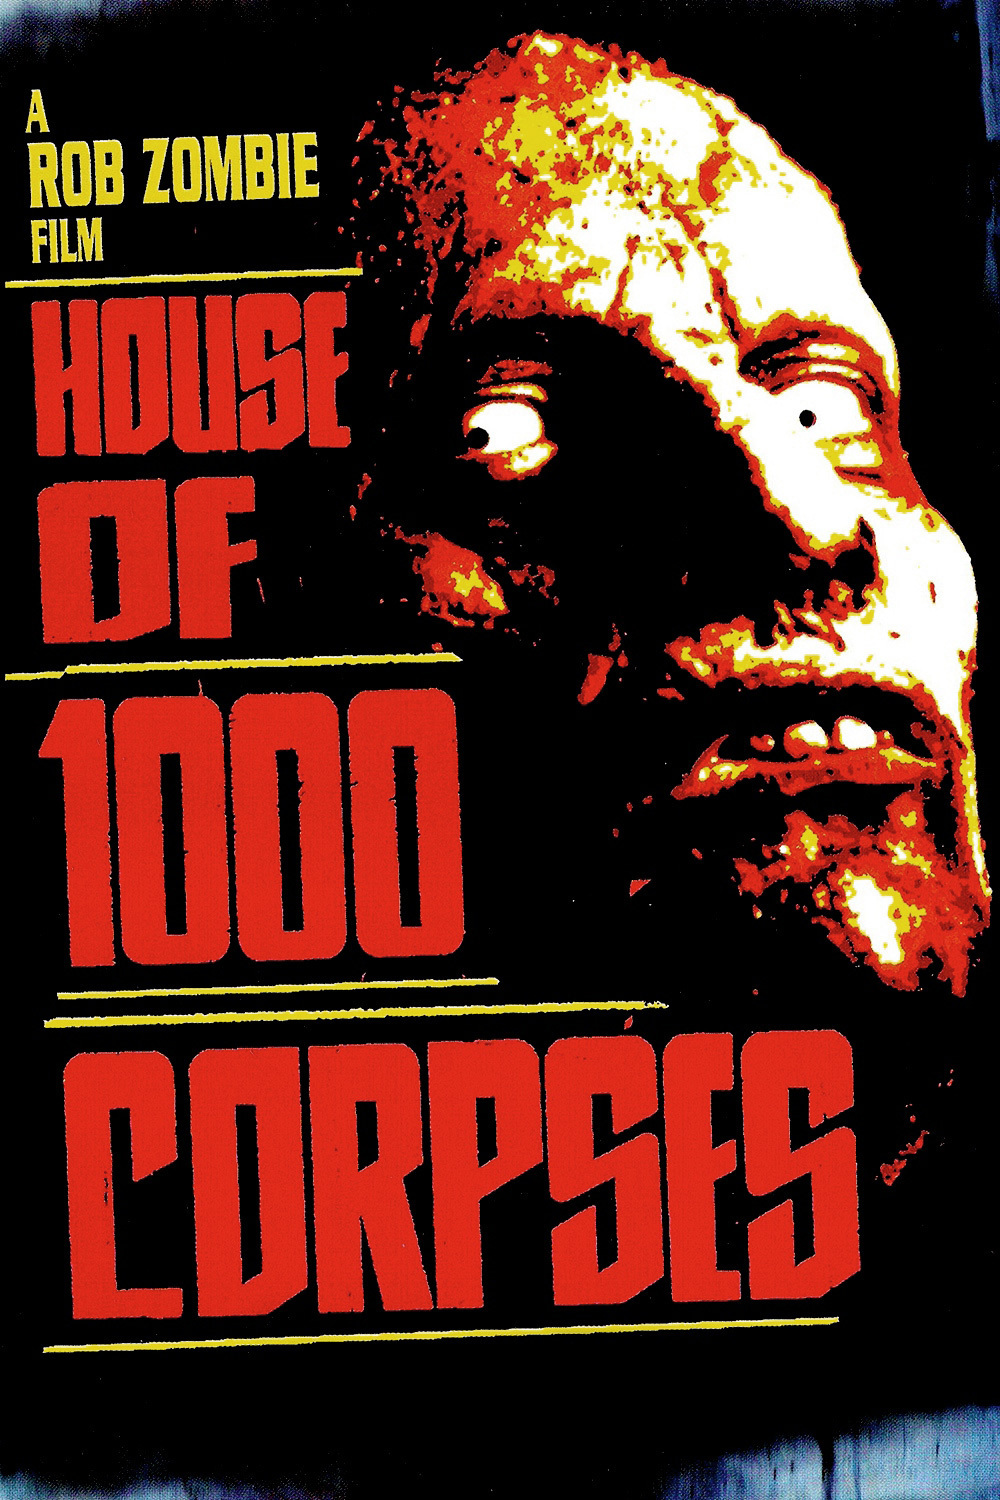 house-of-1000-corpses-poster.jpg